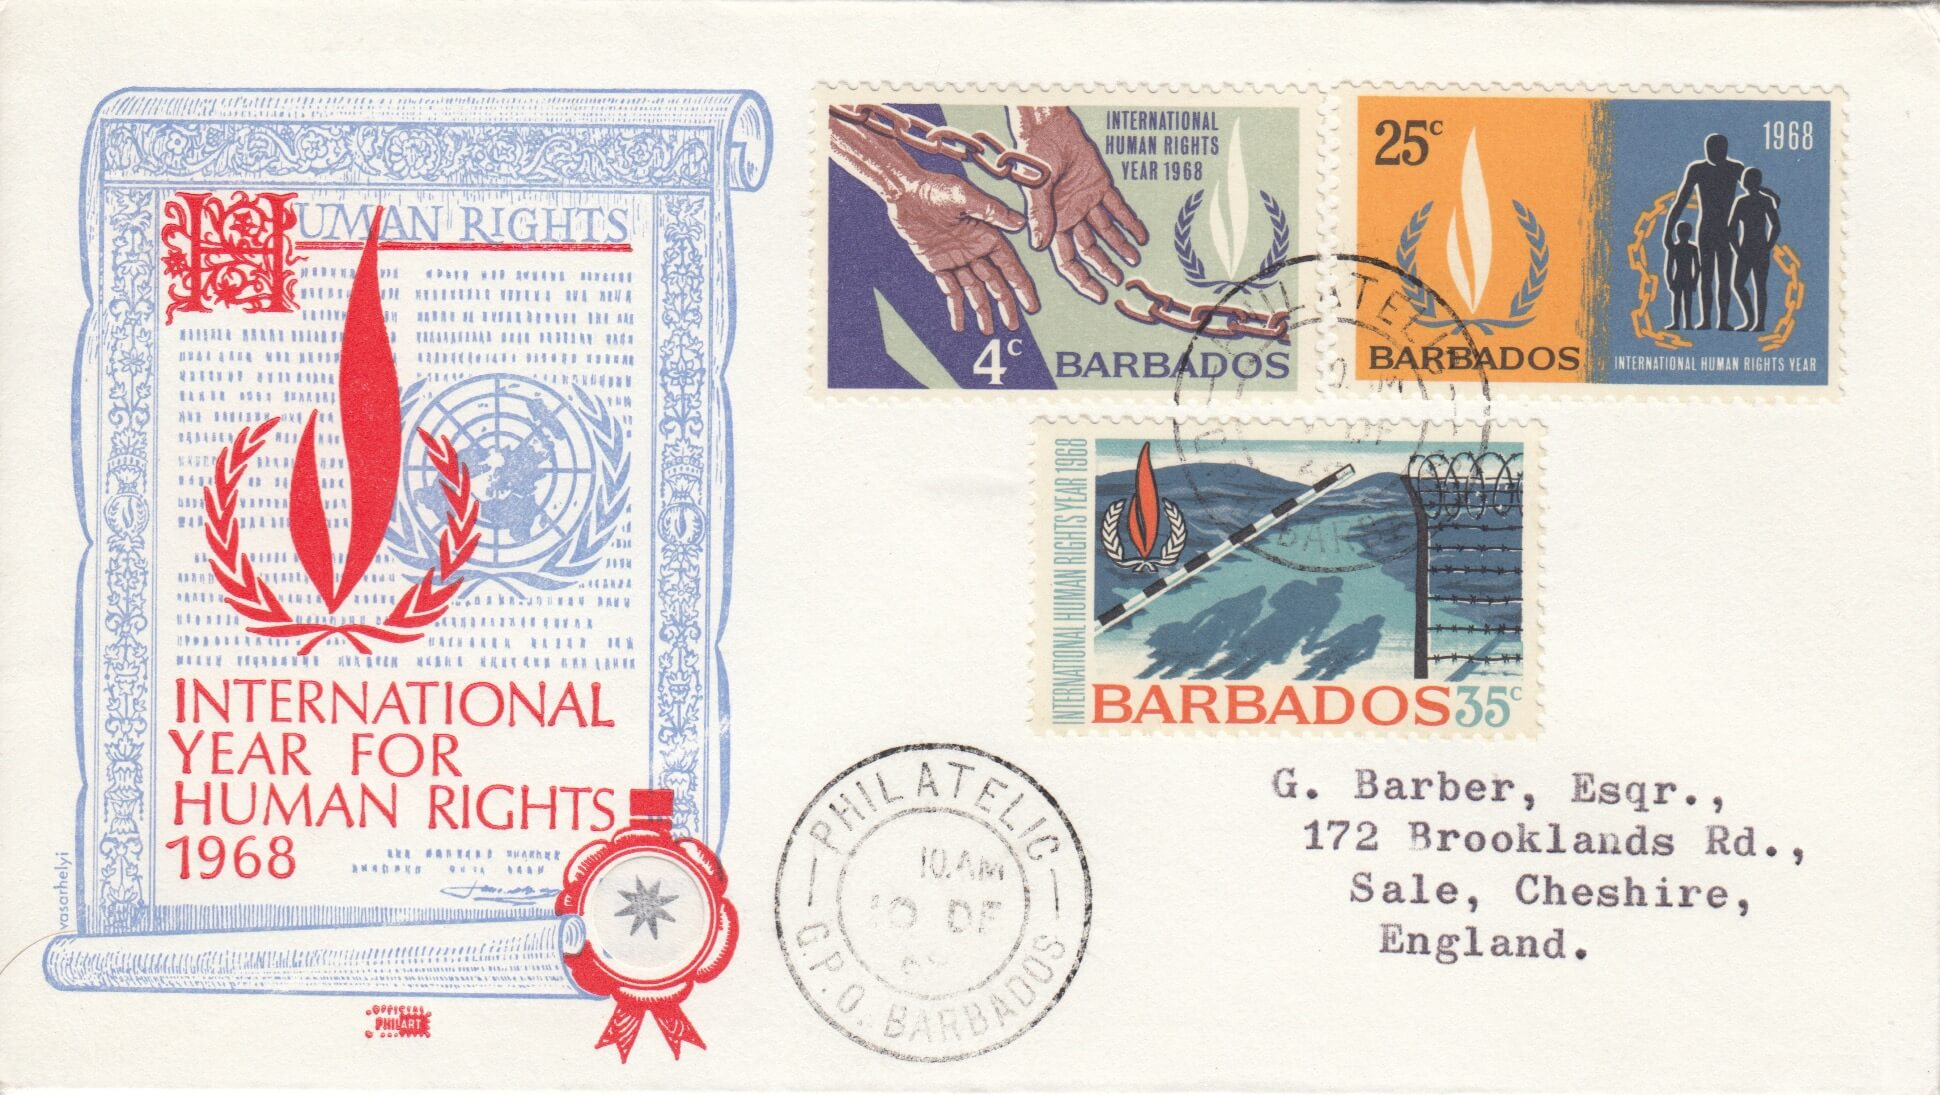 Barbados 1968 International Year for Human Rights FDC - illustrated cover